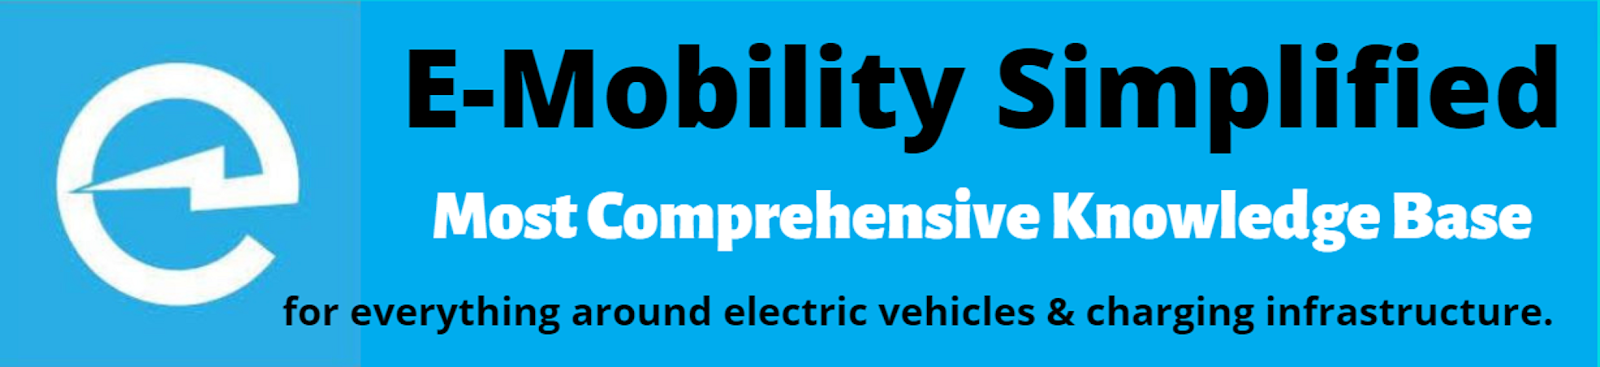 E-Mobility Simplified | Basics of Electric Vehicles and Charging